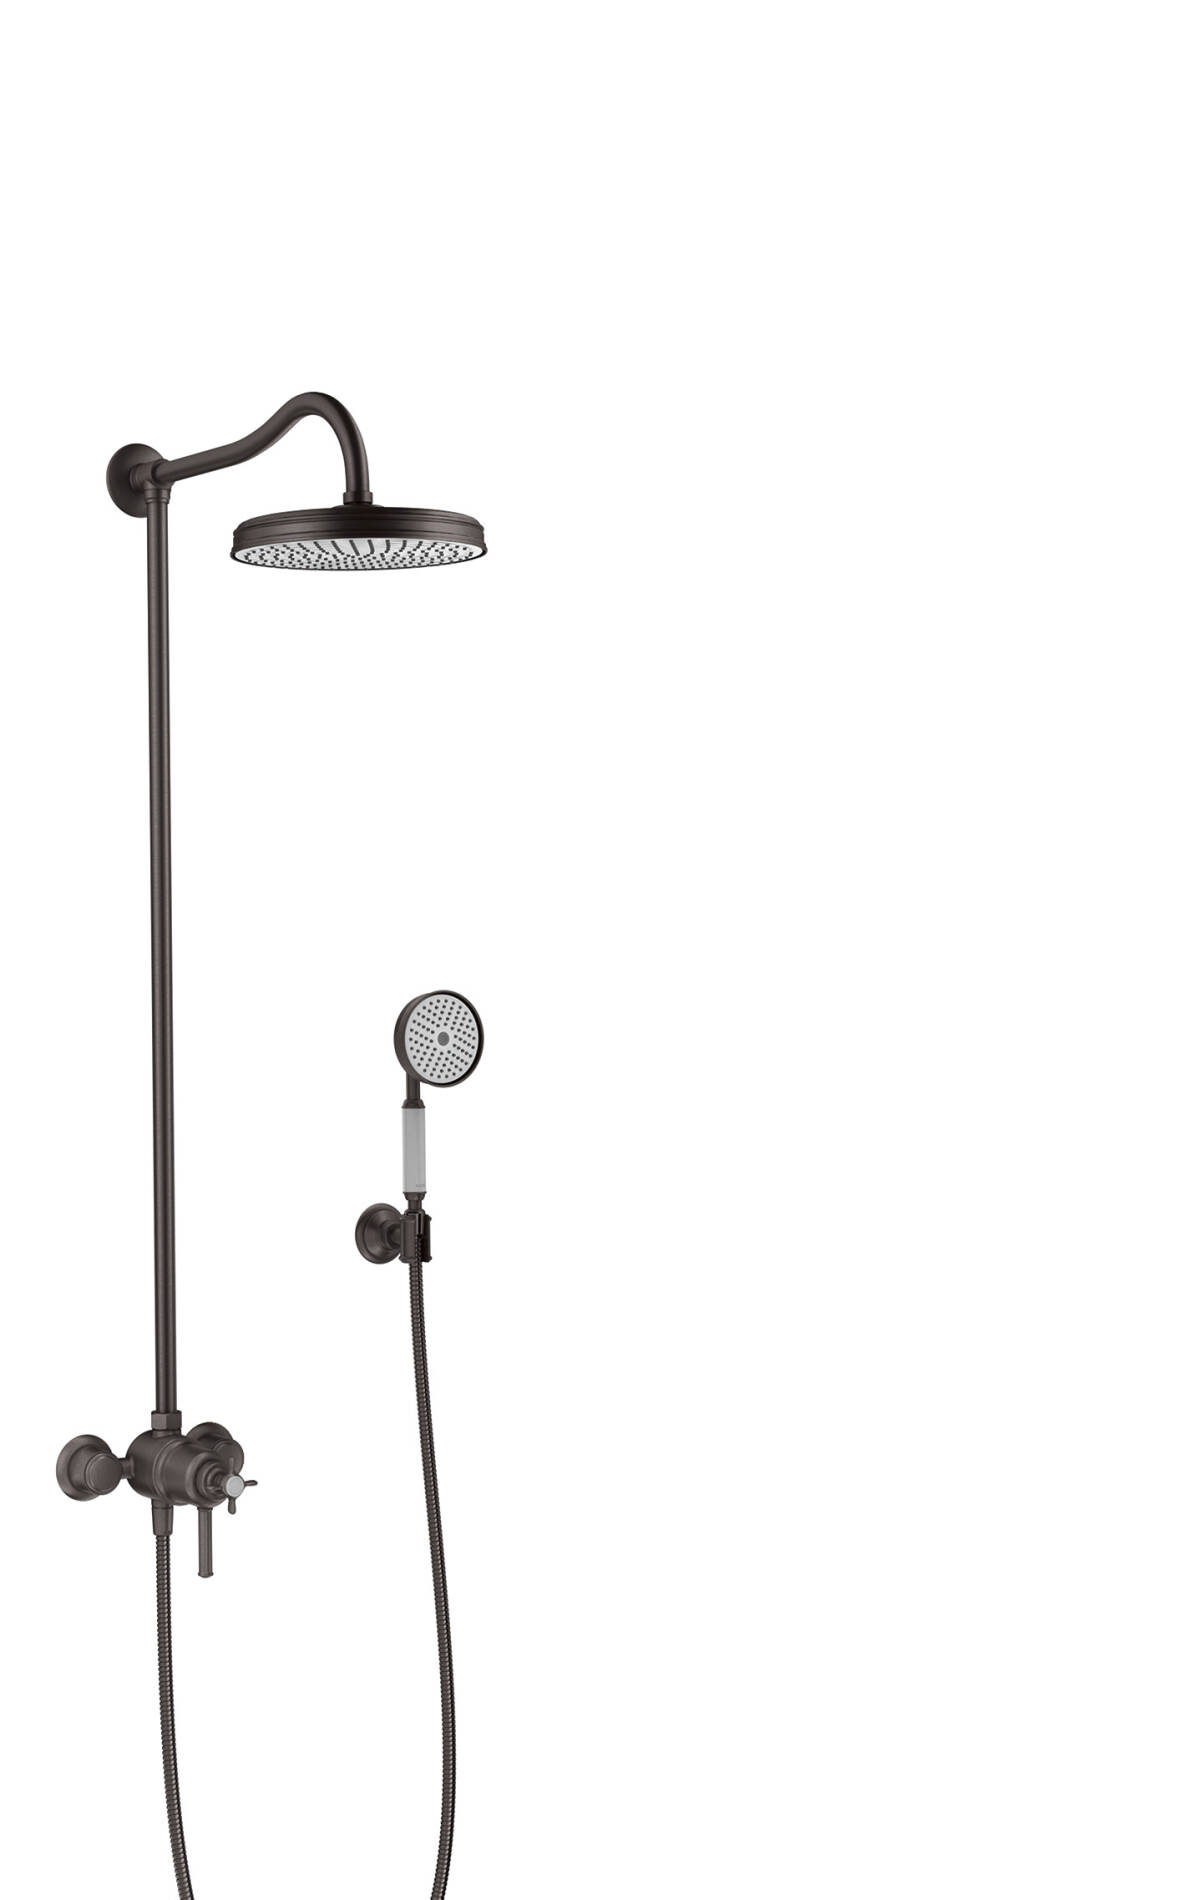 Showerpipe with thermostat and overhead shower 1jet, Brushed Black Chrome, 16570340